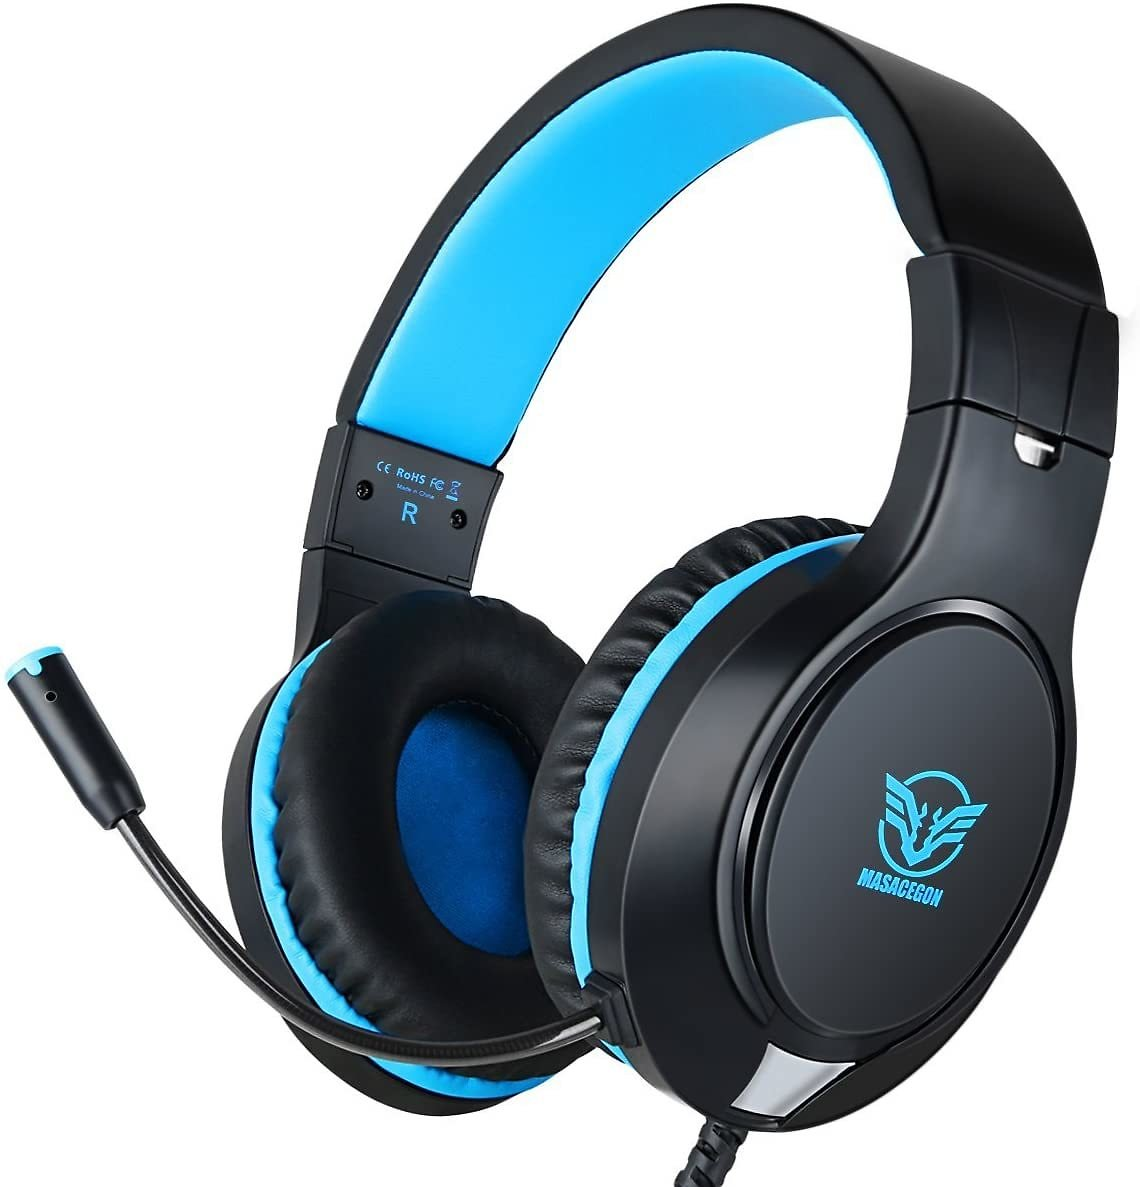 43% Off Gaming Headset for Xbox One, PS4,Nintendo Switch Bass Surround and Noise Cancelling with Flexible Mic, 3.5mm Wired Adjus